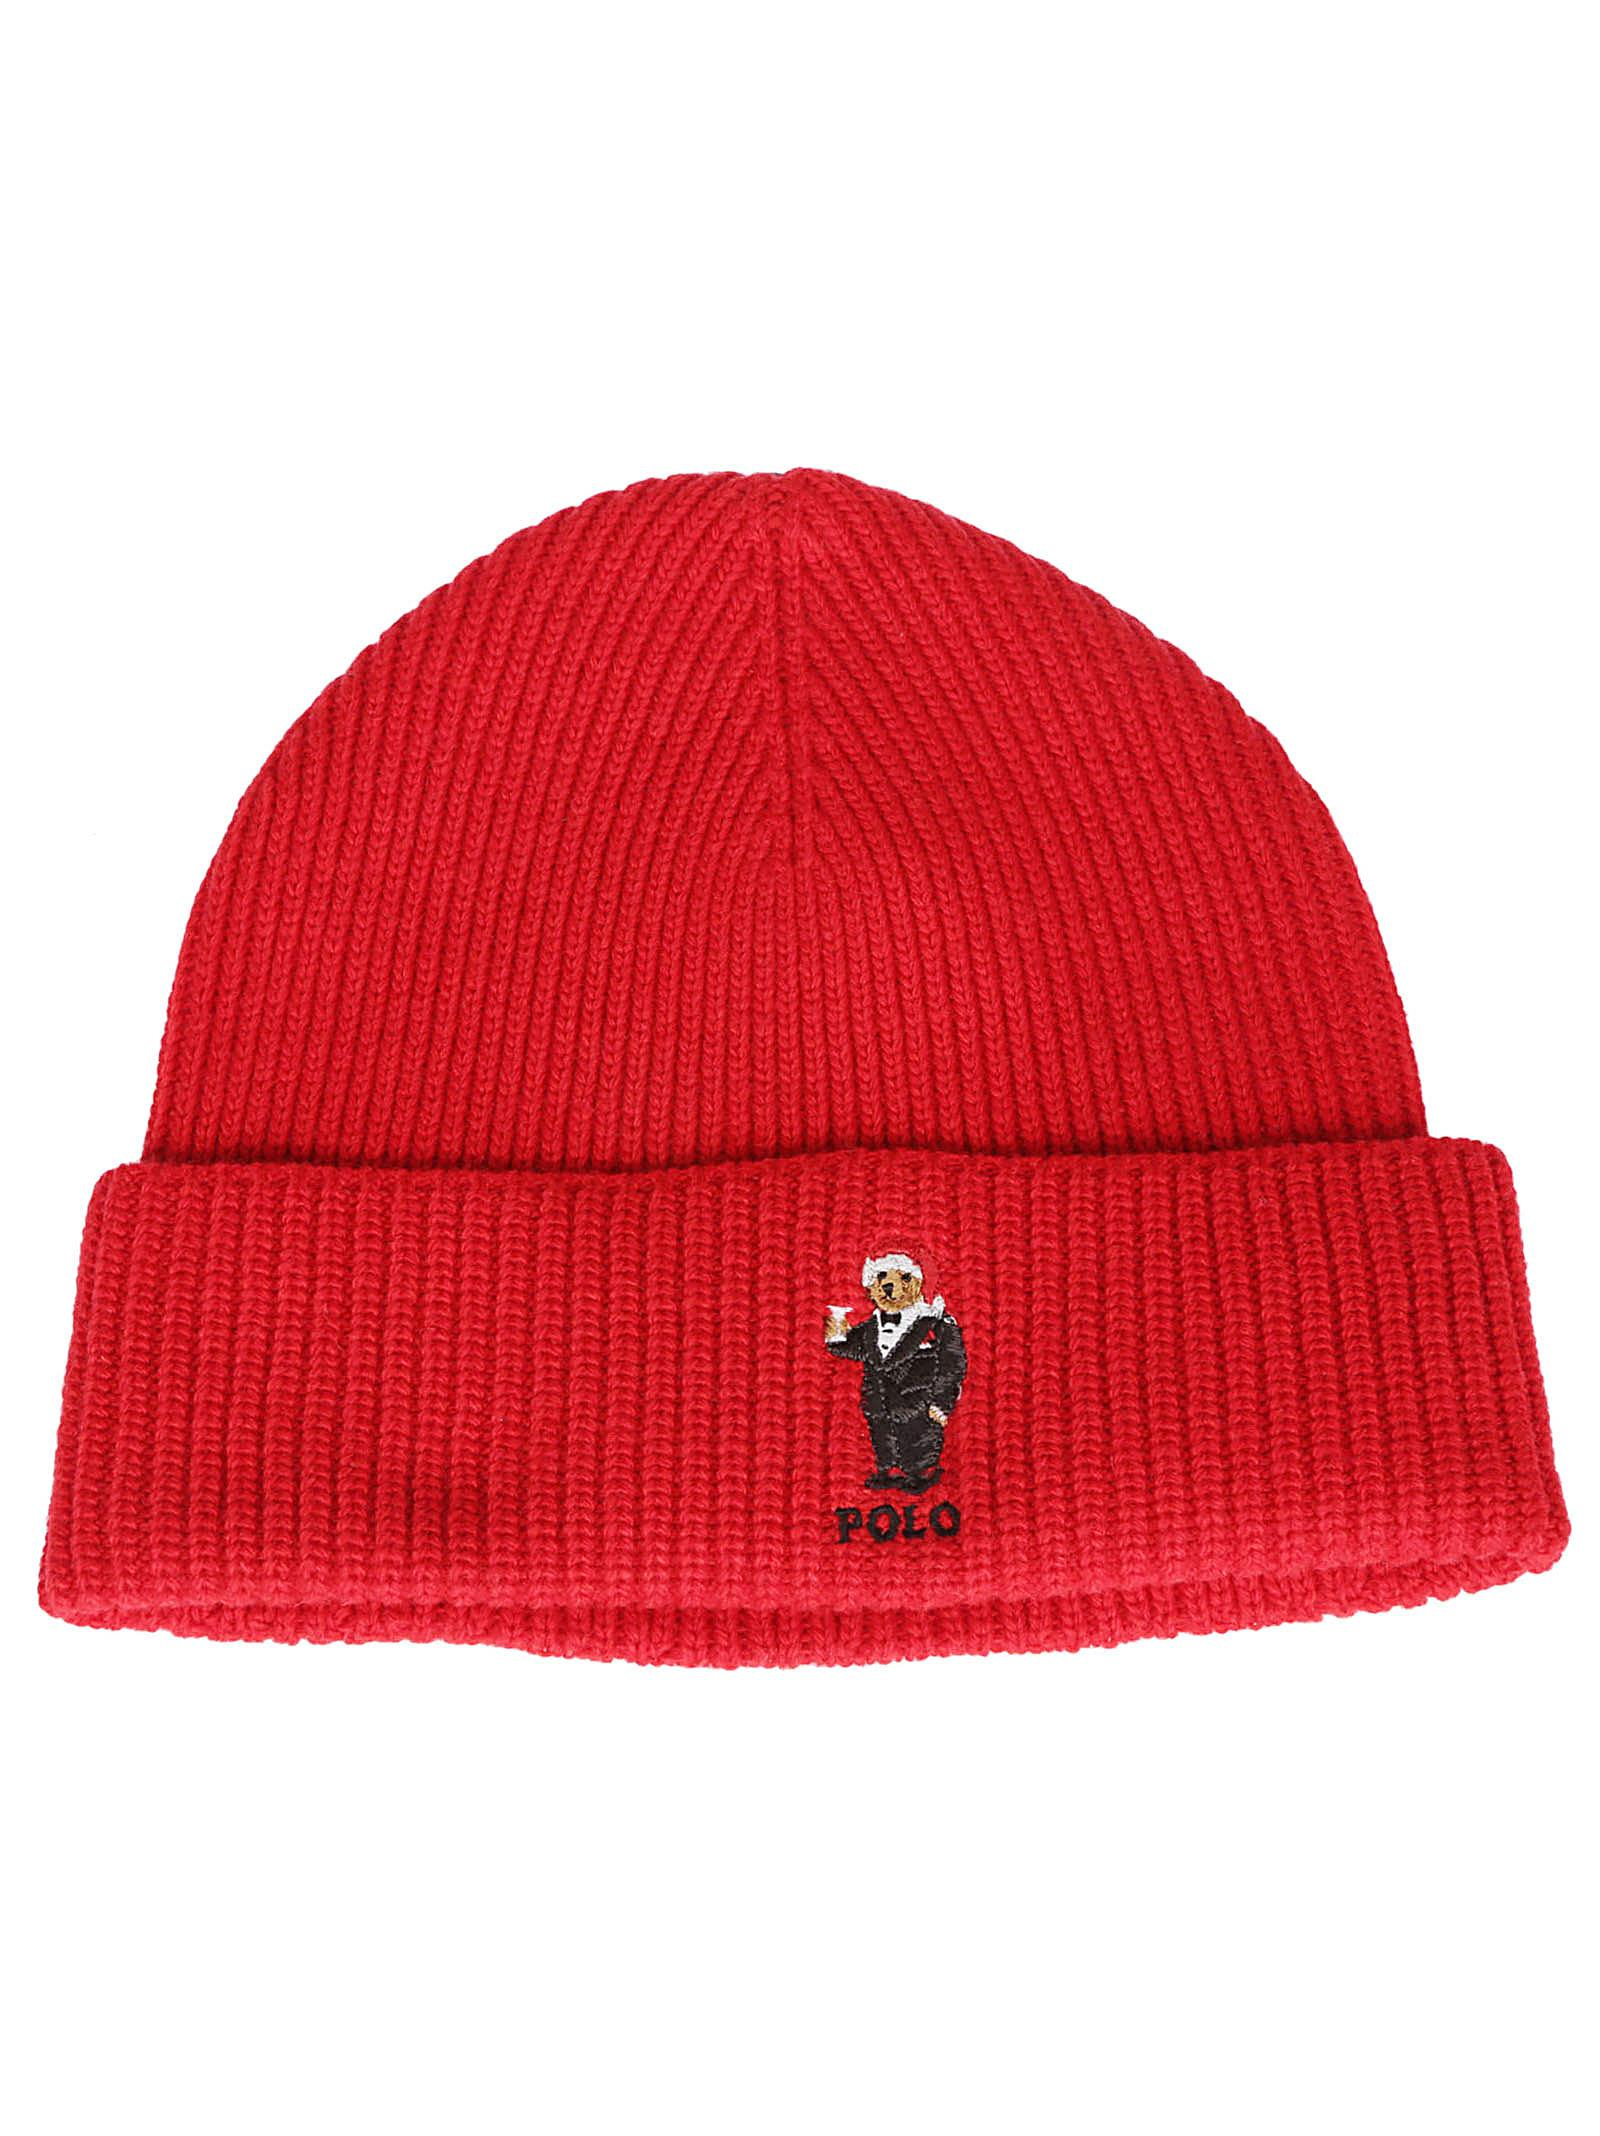 Polo Ralph Lauren Santa Bear Beanie In Red  2603c77283d